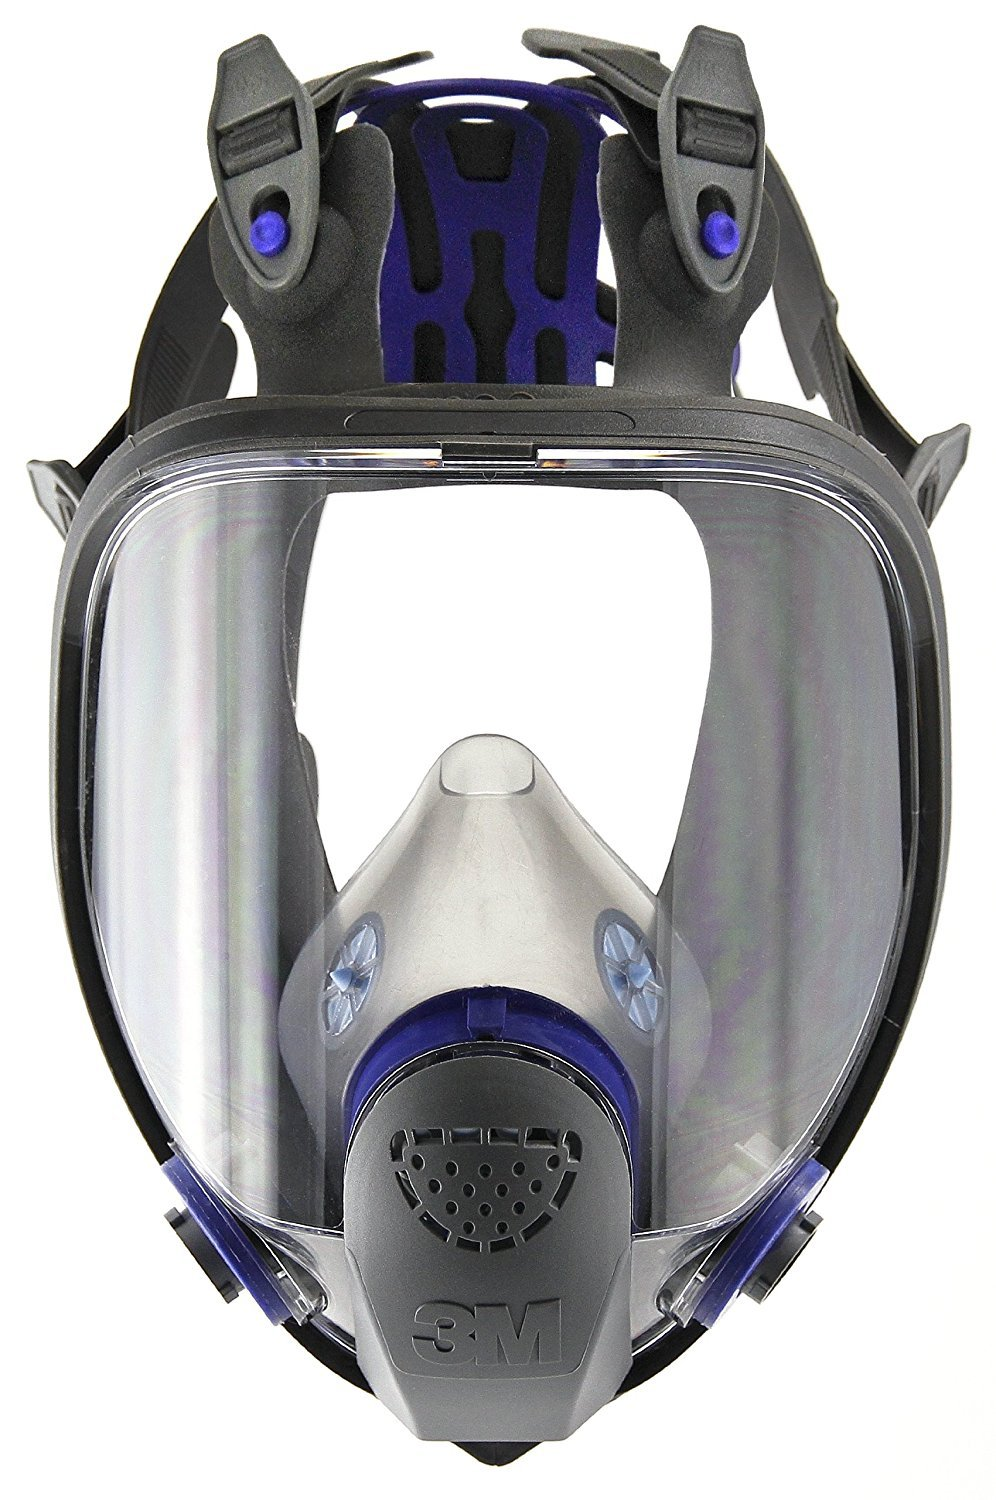 3M Ultimate FX Full Facepiece Reusable Respirator FF-401, Mold, Painting, Sanding, Chemicals, Gases, Dust, Small by 3M Personal Protective Equipment